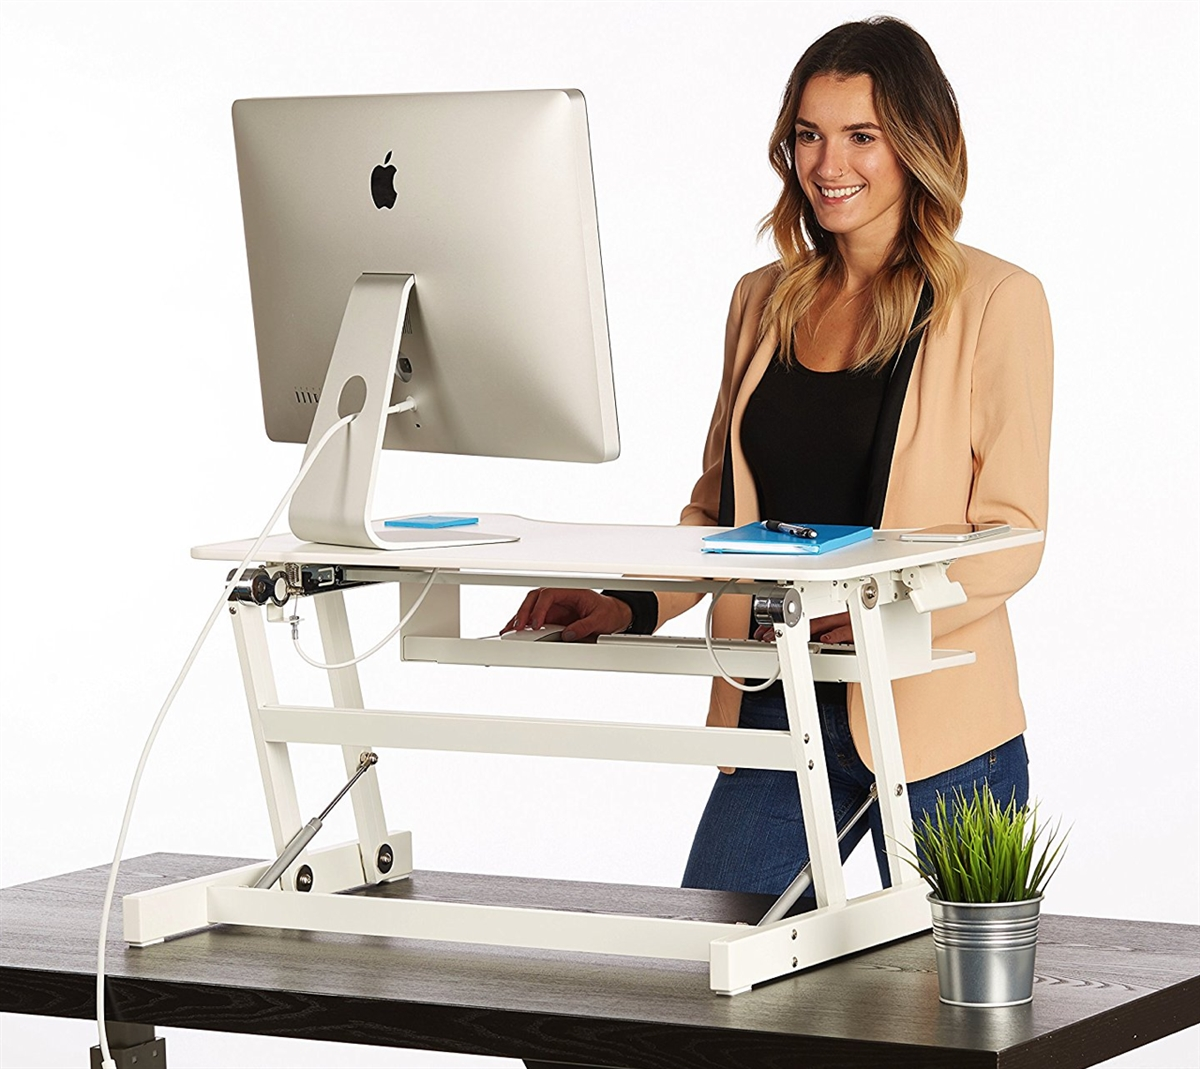 desk york reviews at standing people lowres desks by wall new times wirecutter standingdesks the working along best a office